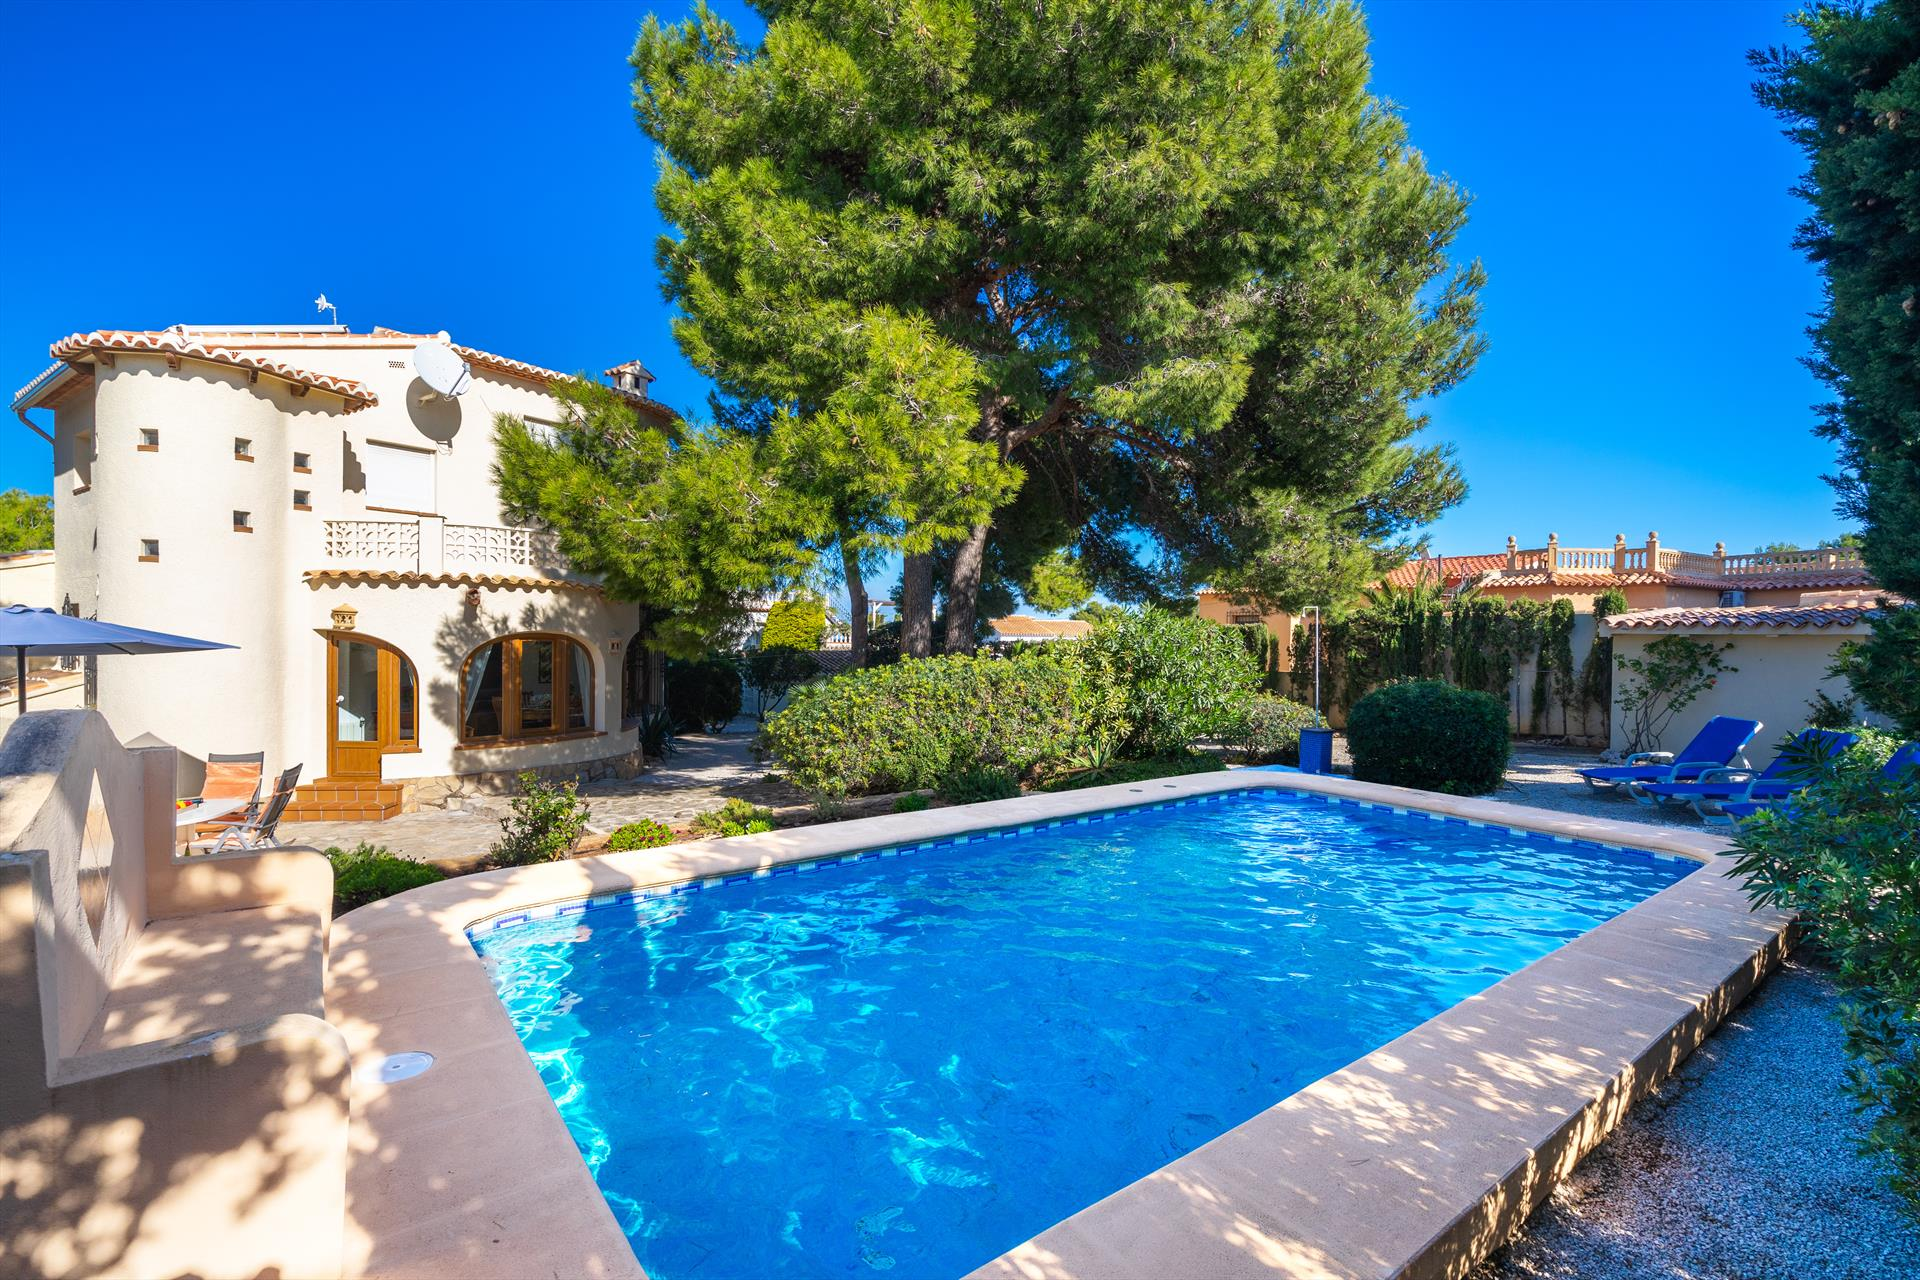 La Gaviota, Classic and nice holiday home  with private pool in Javea, on the Costa Blanca, Spain for 4 persons...